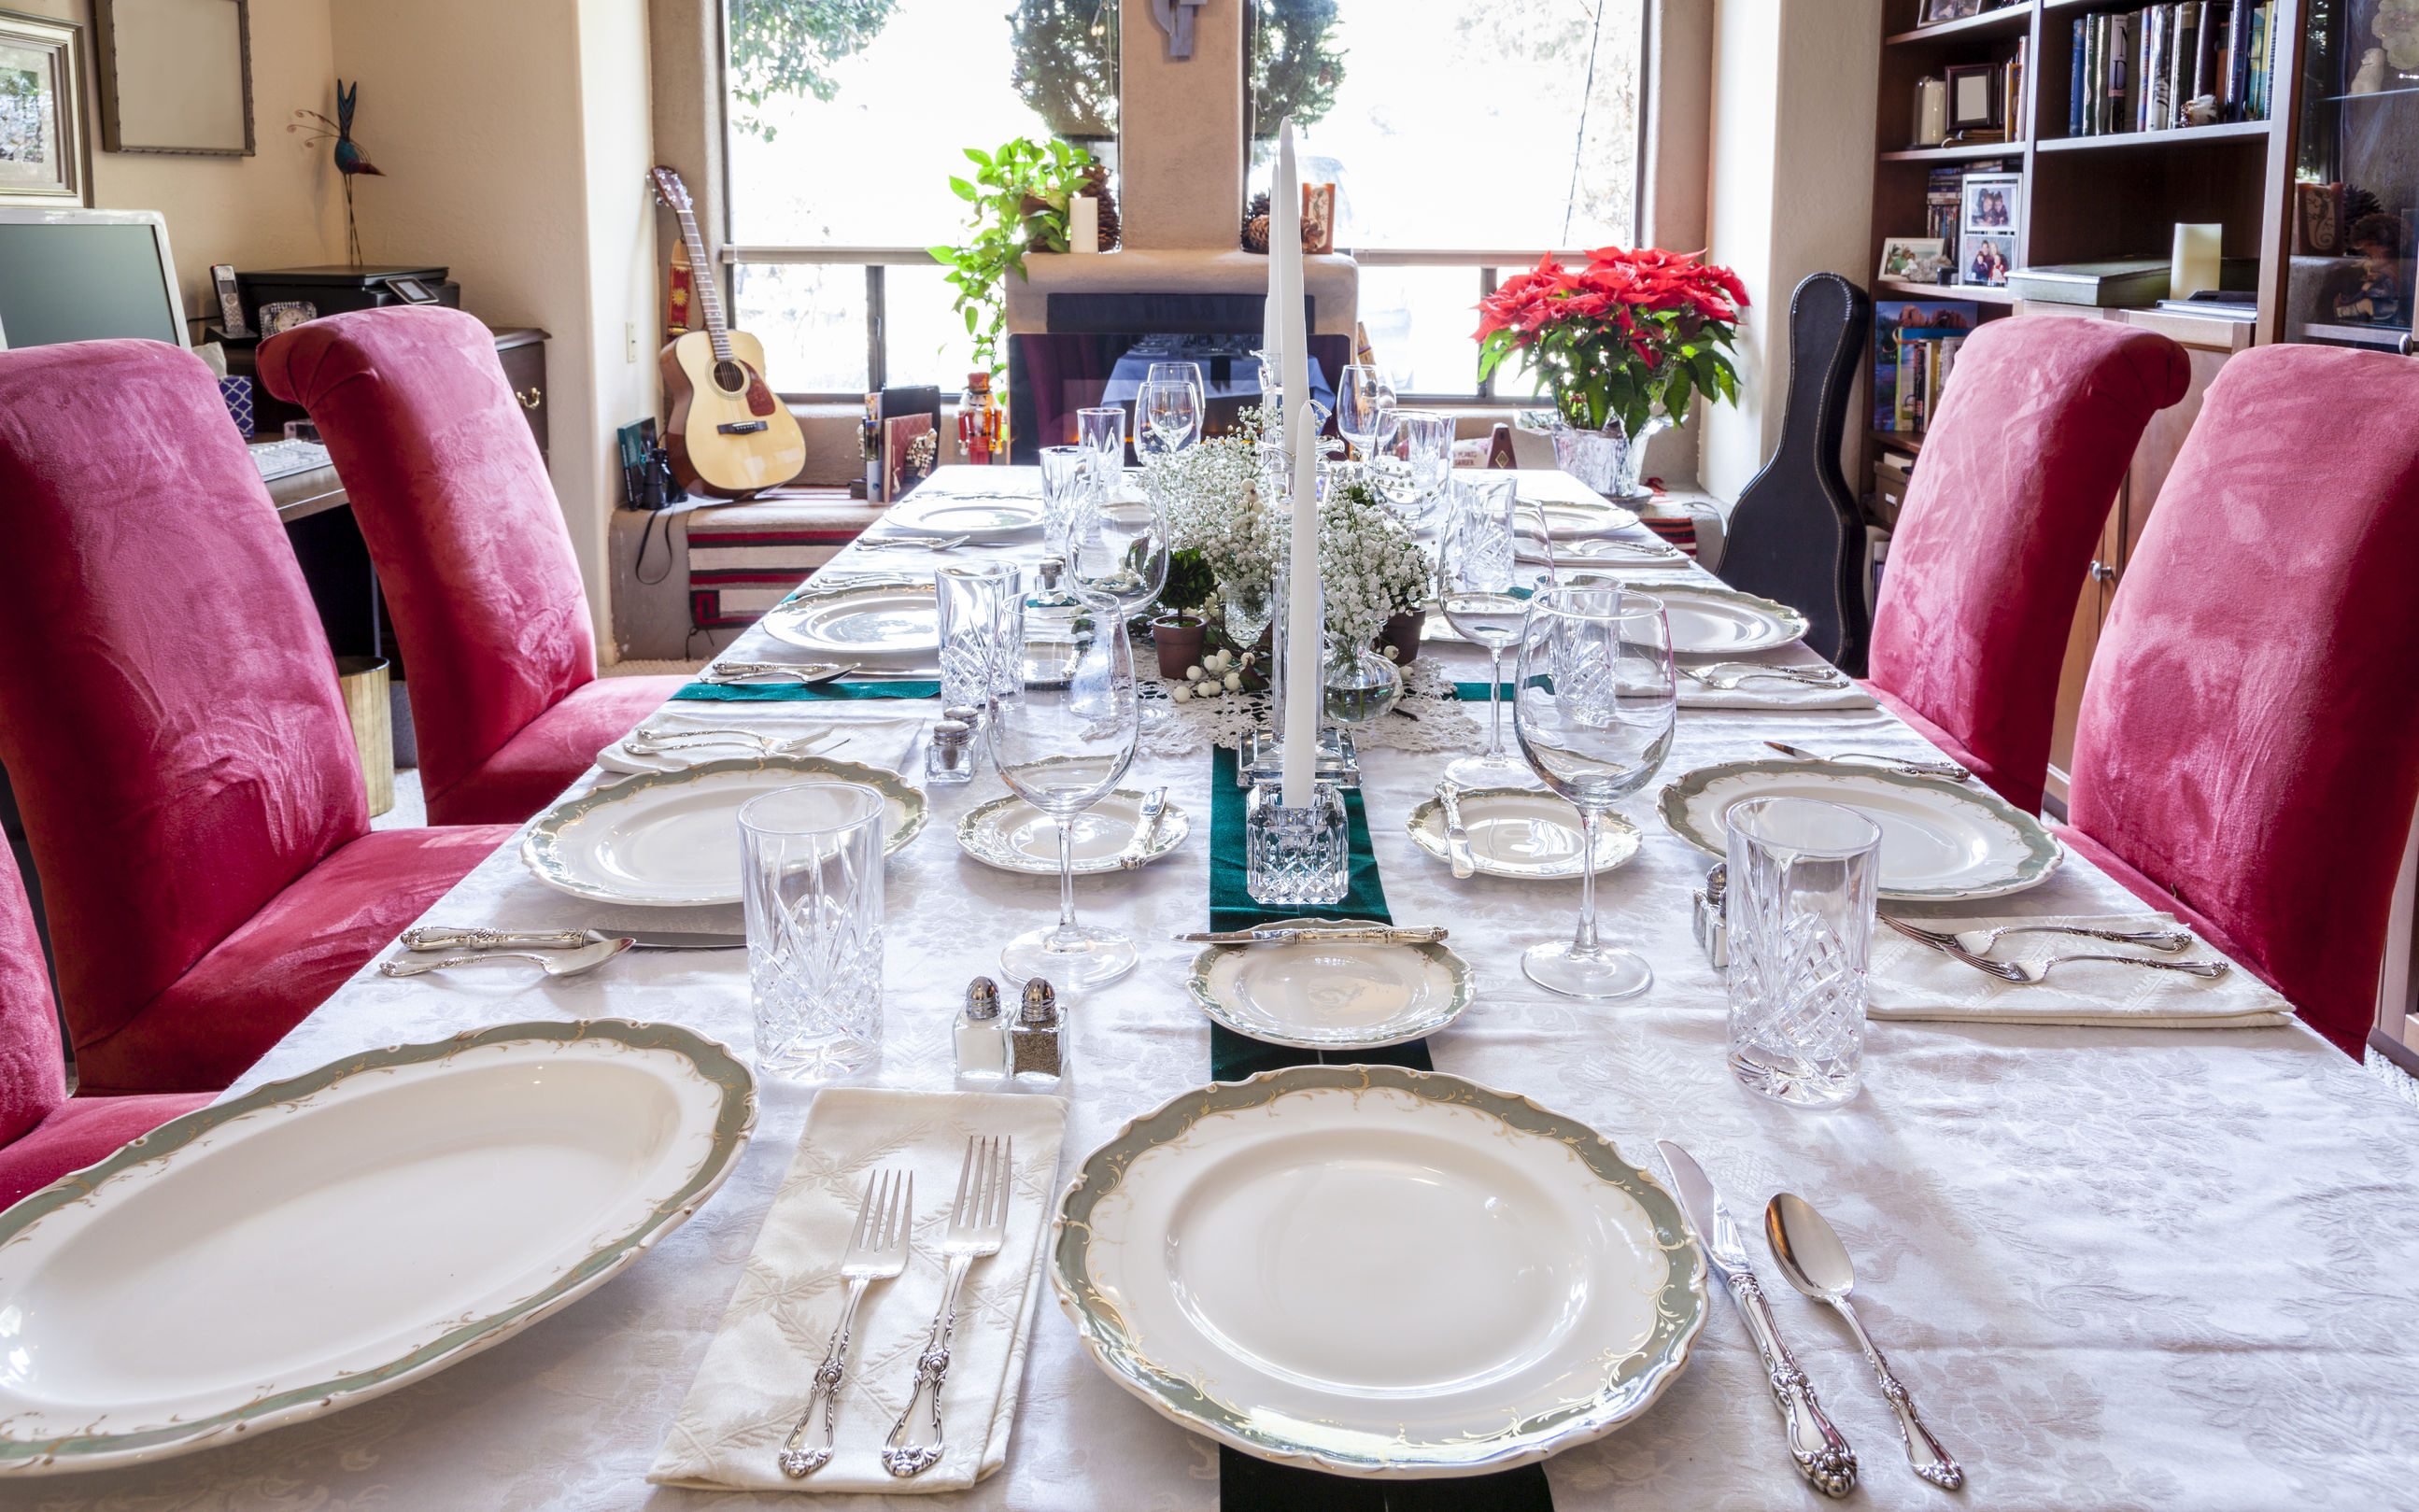 44961826 - dining table is set for a holiday dinner